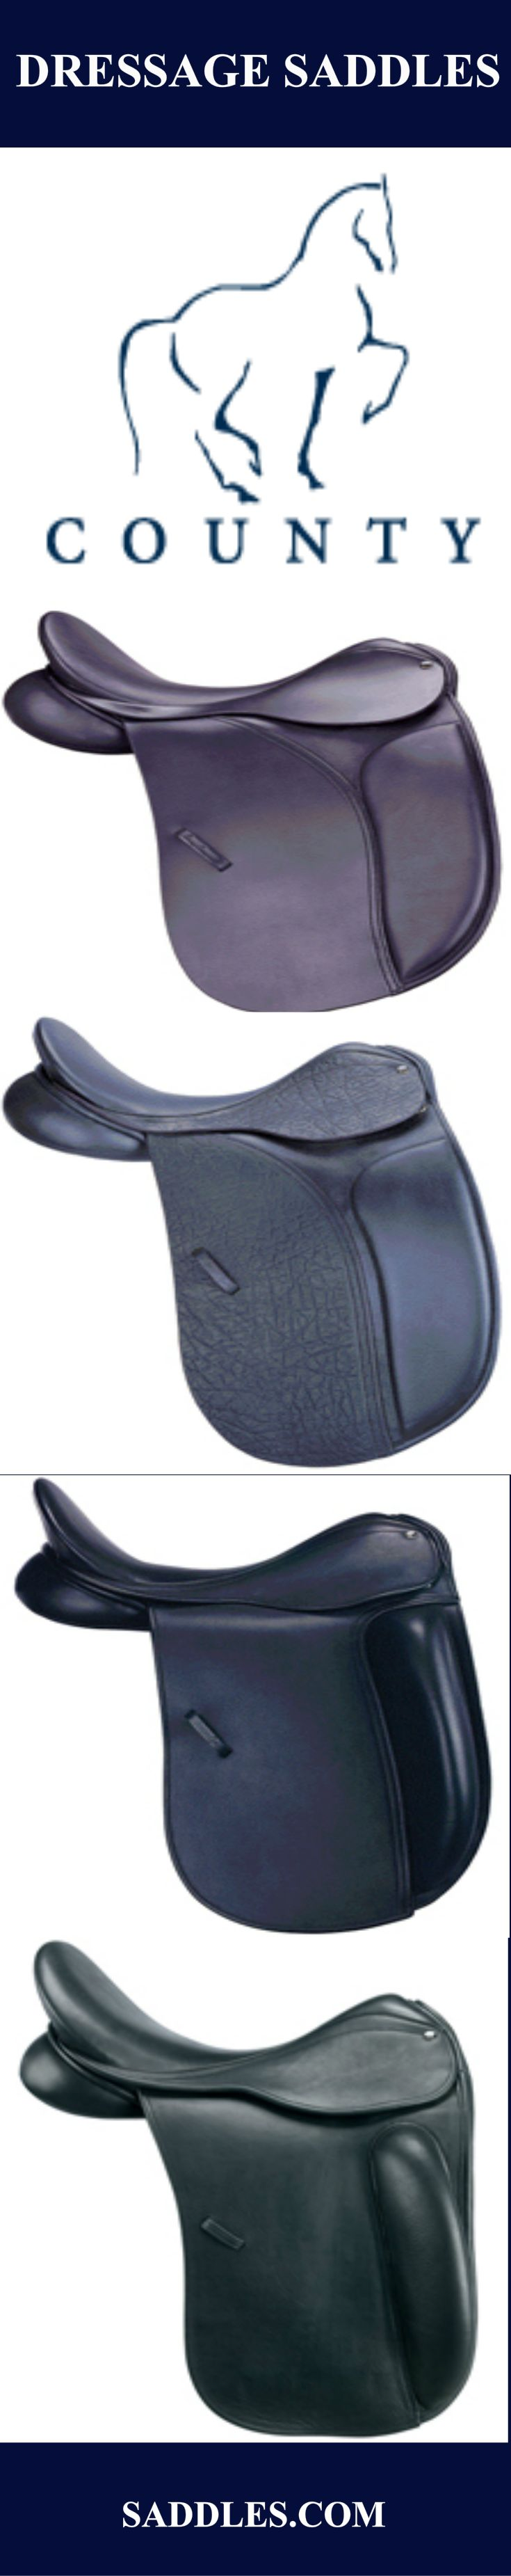 Dressage Saddles For Sale! #dressagesaddles